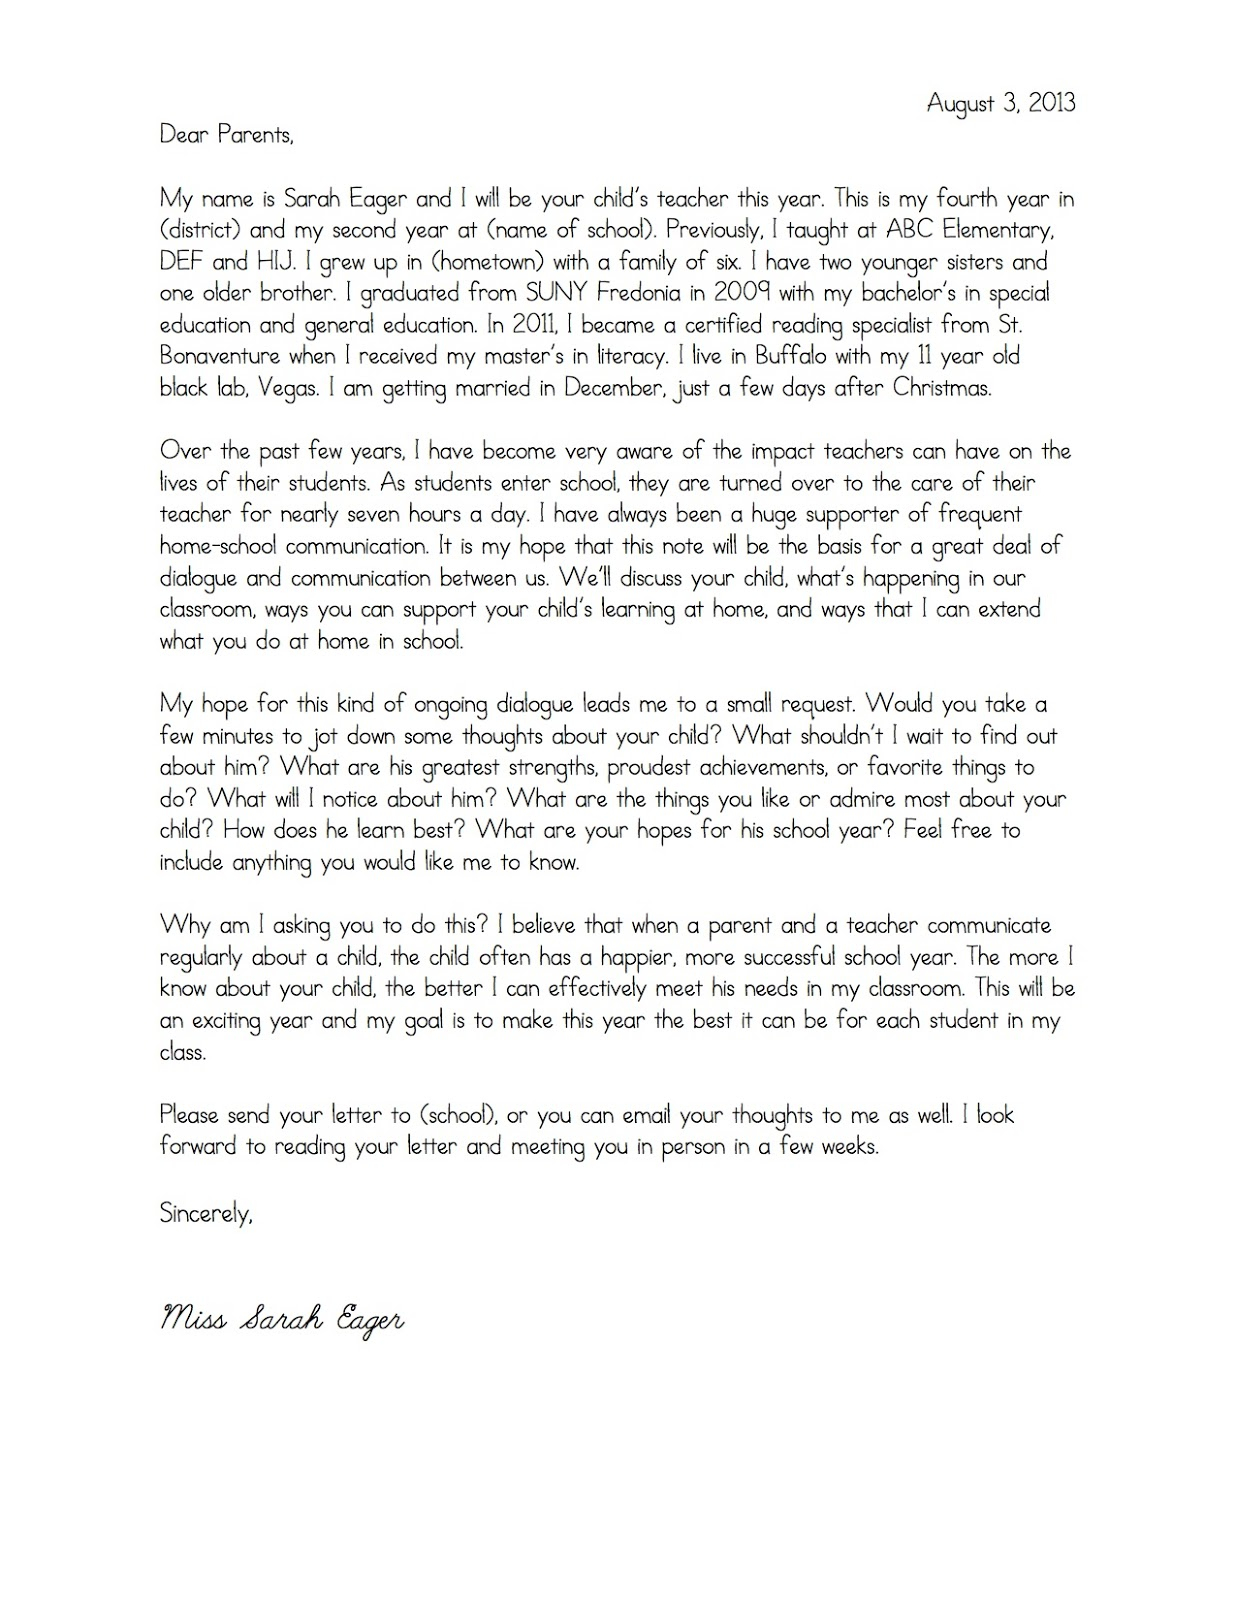 Kindergarten Welcome Letter Template - Wel E Parent Letters From Teachers Copy Email Email to Parents